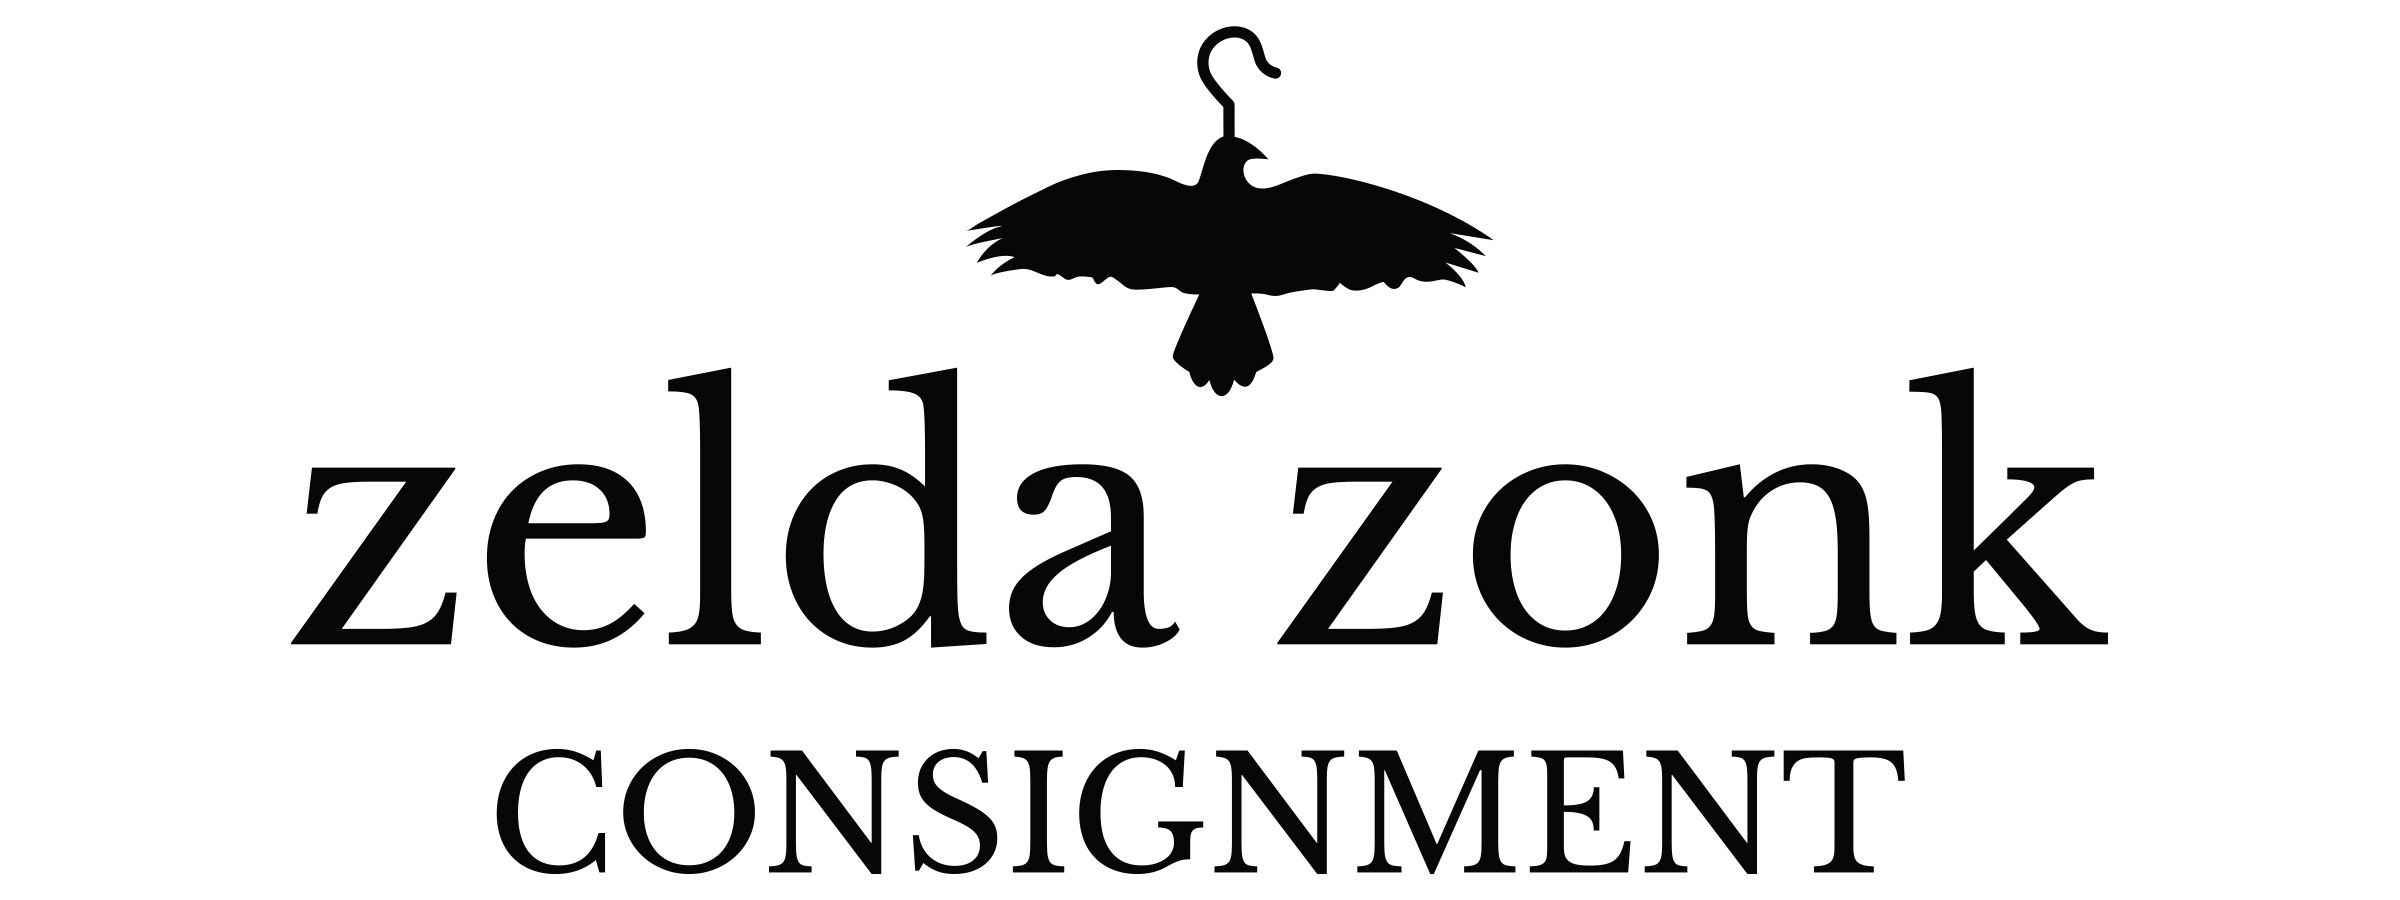 Zelda Zonk Consignment A Consignment Store Zonked